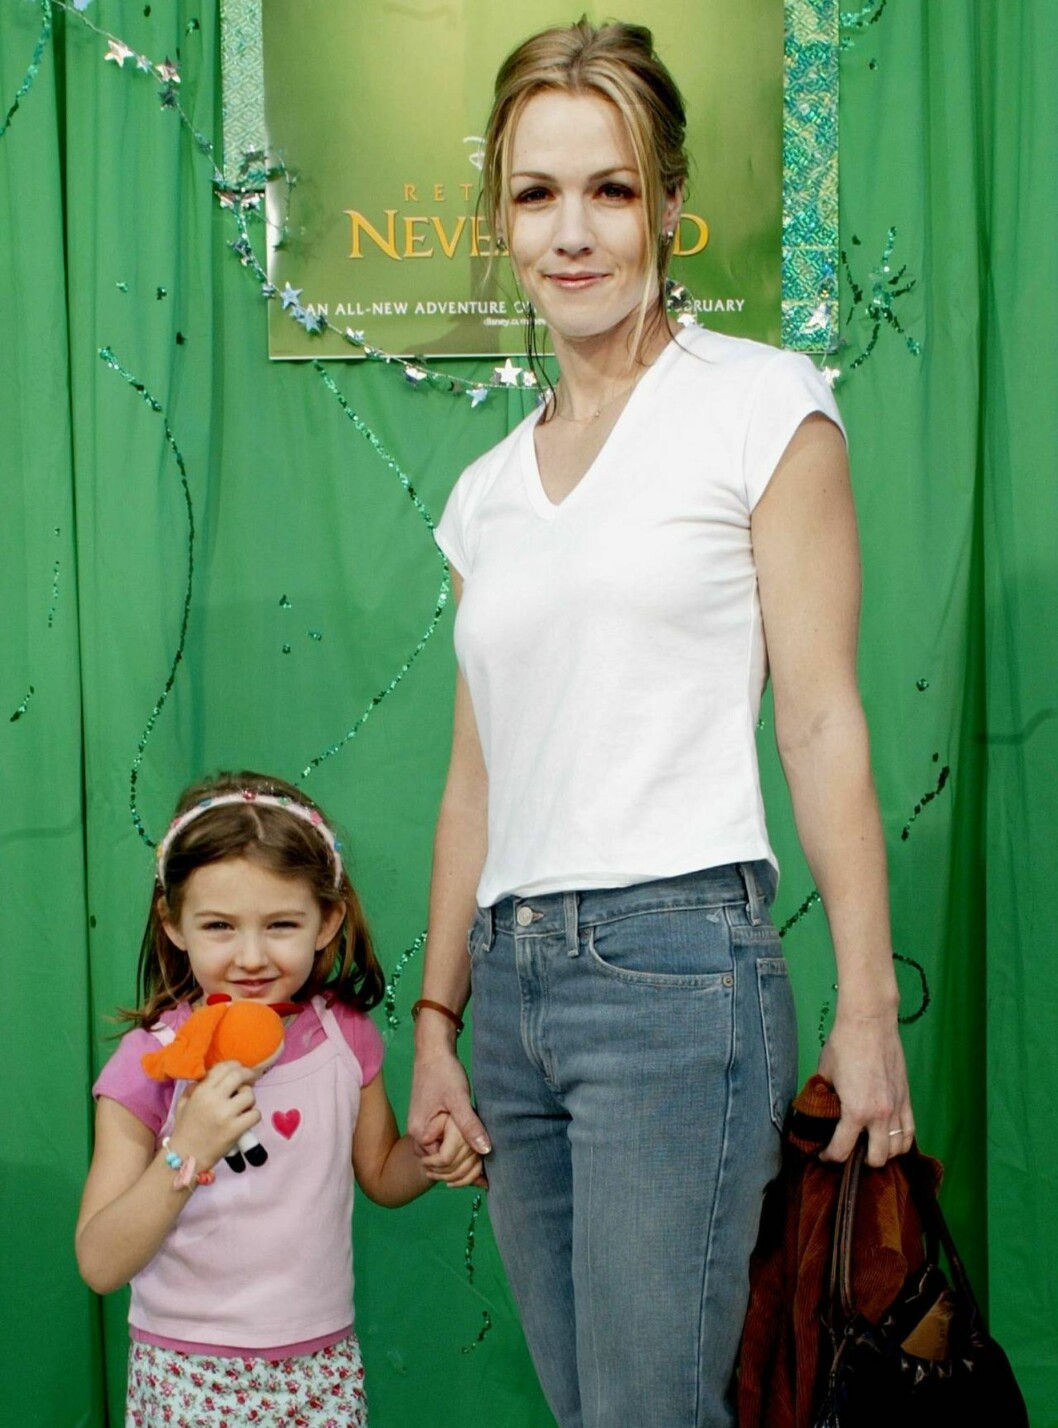 "400786 03:  Actress Jennie Garth and her daughter Luca Fatinilli attend the film premiere of ""Return To Never Land"" February10, 2002 in Los Angeles, CA.  The film will be released February 15, 2002.  (Photo by Frederick M. Brown/Getty Images) ALL OVER PR Foto: All Over Press"